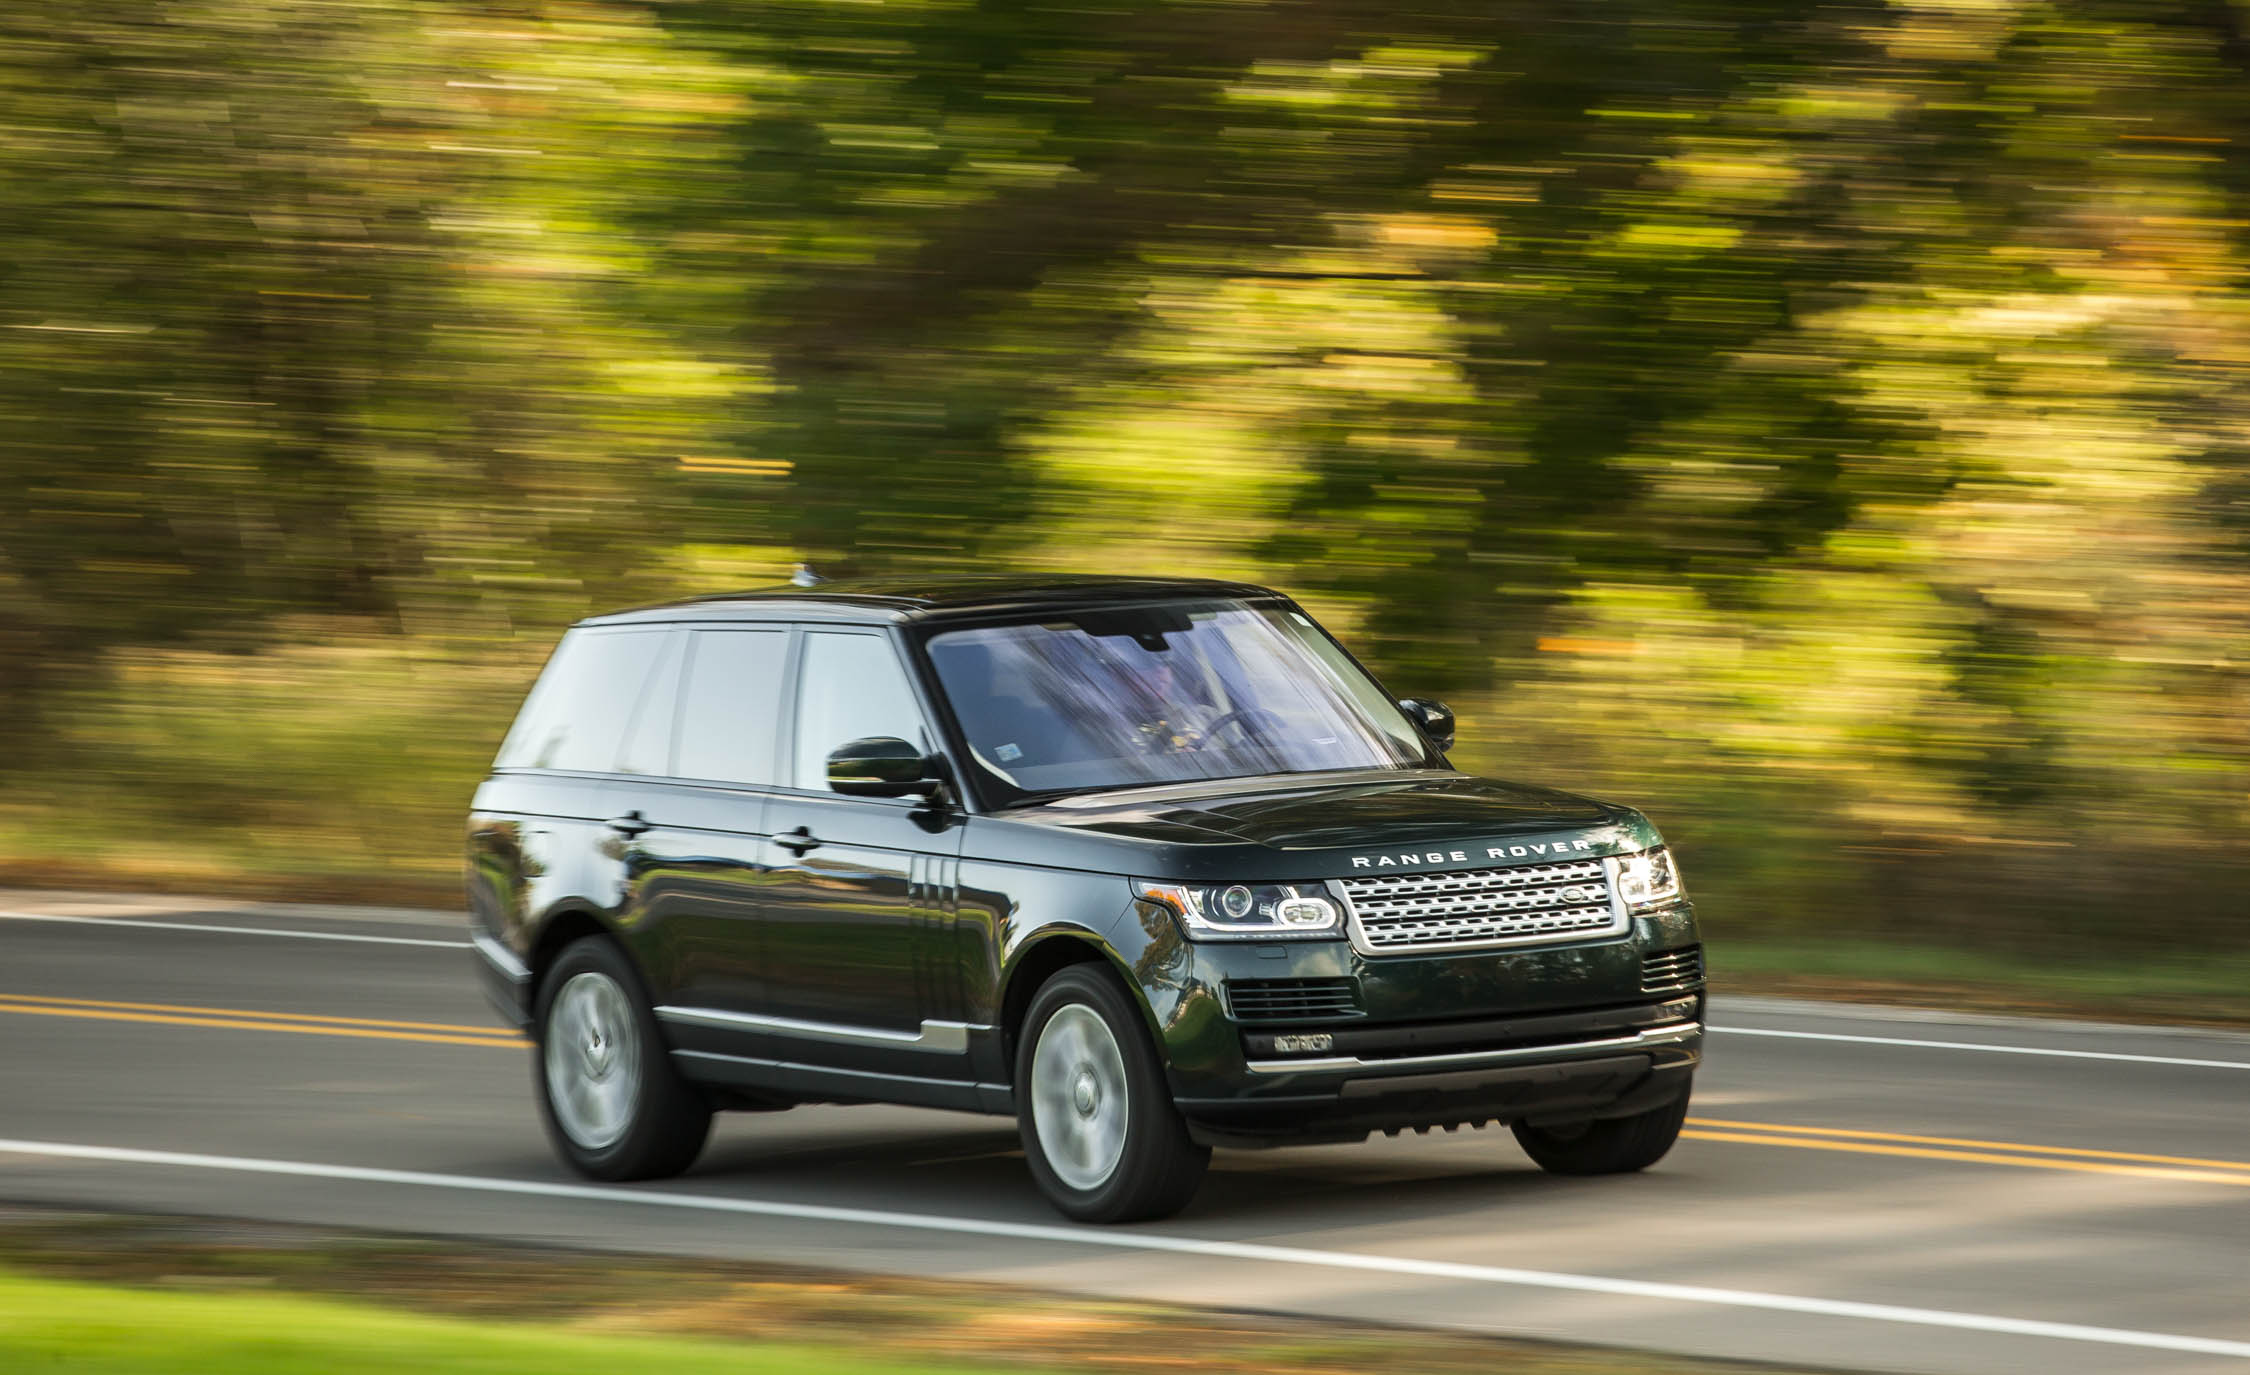 2016 Land Rover Range Rover HSE Td (Photo 5 of 8)